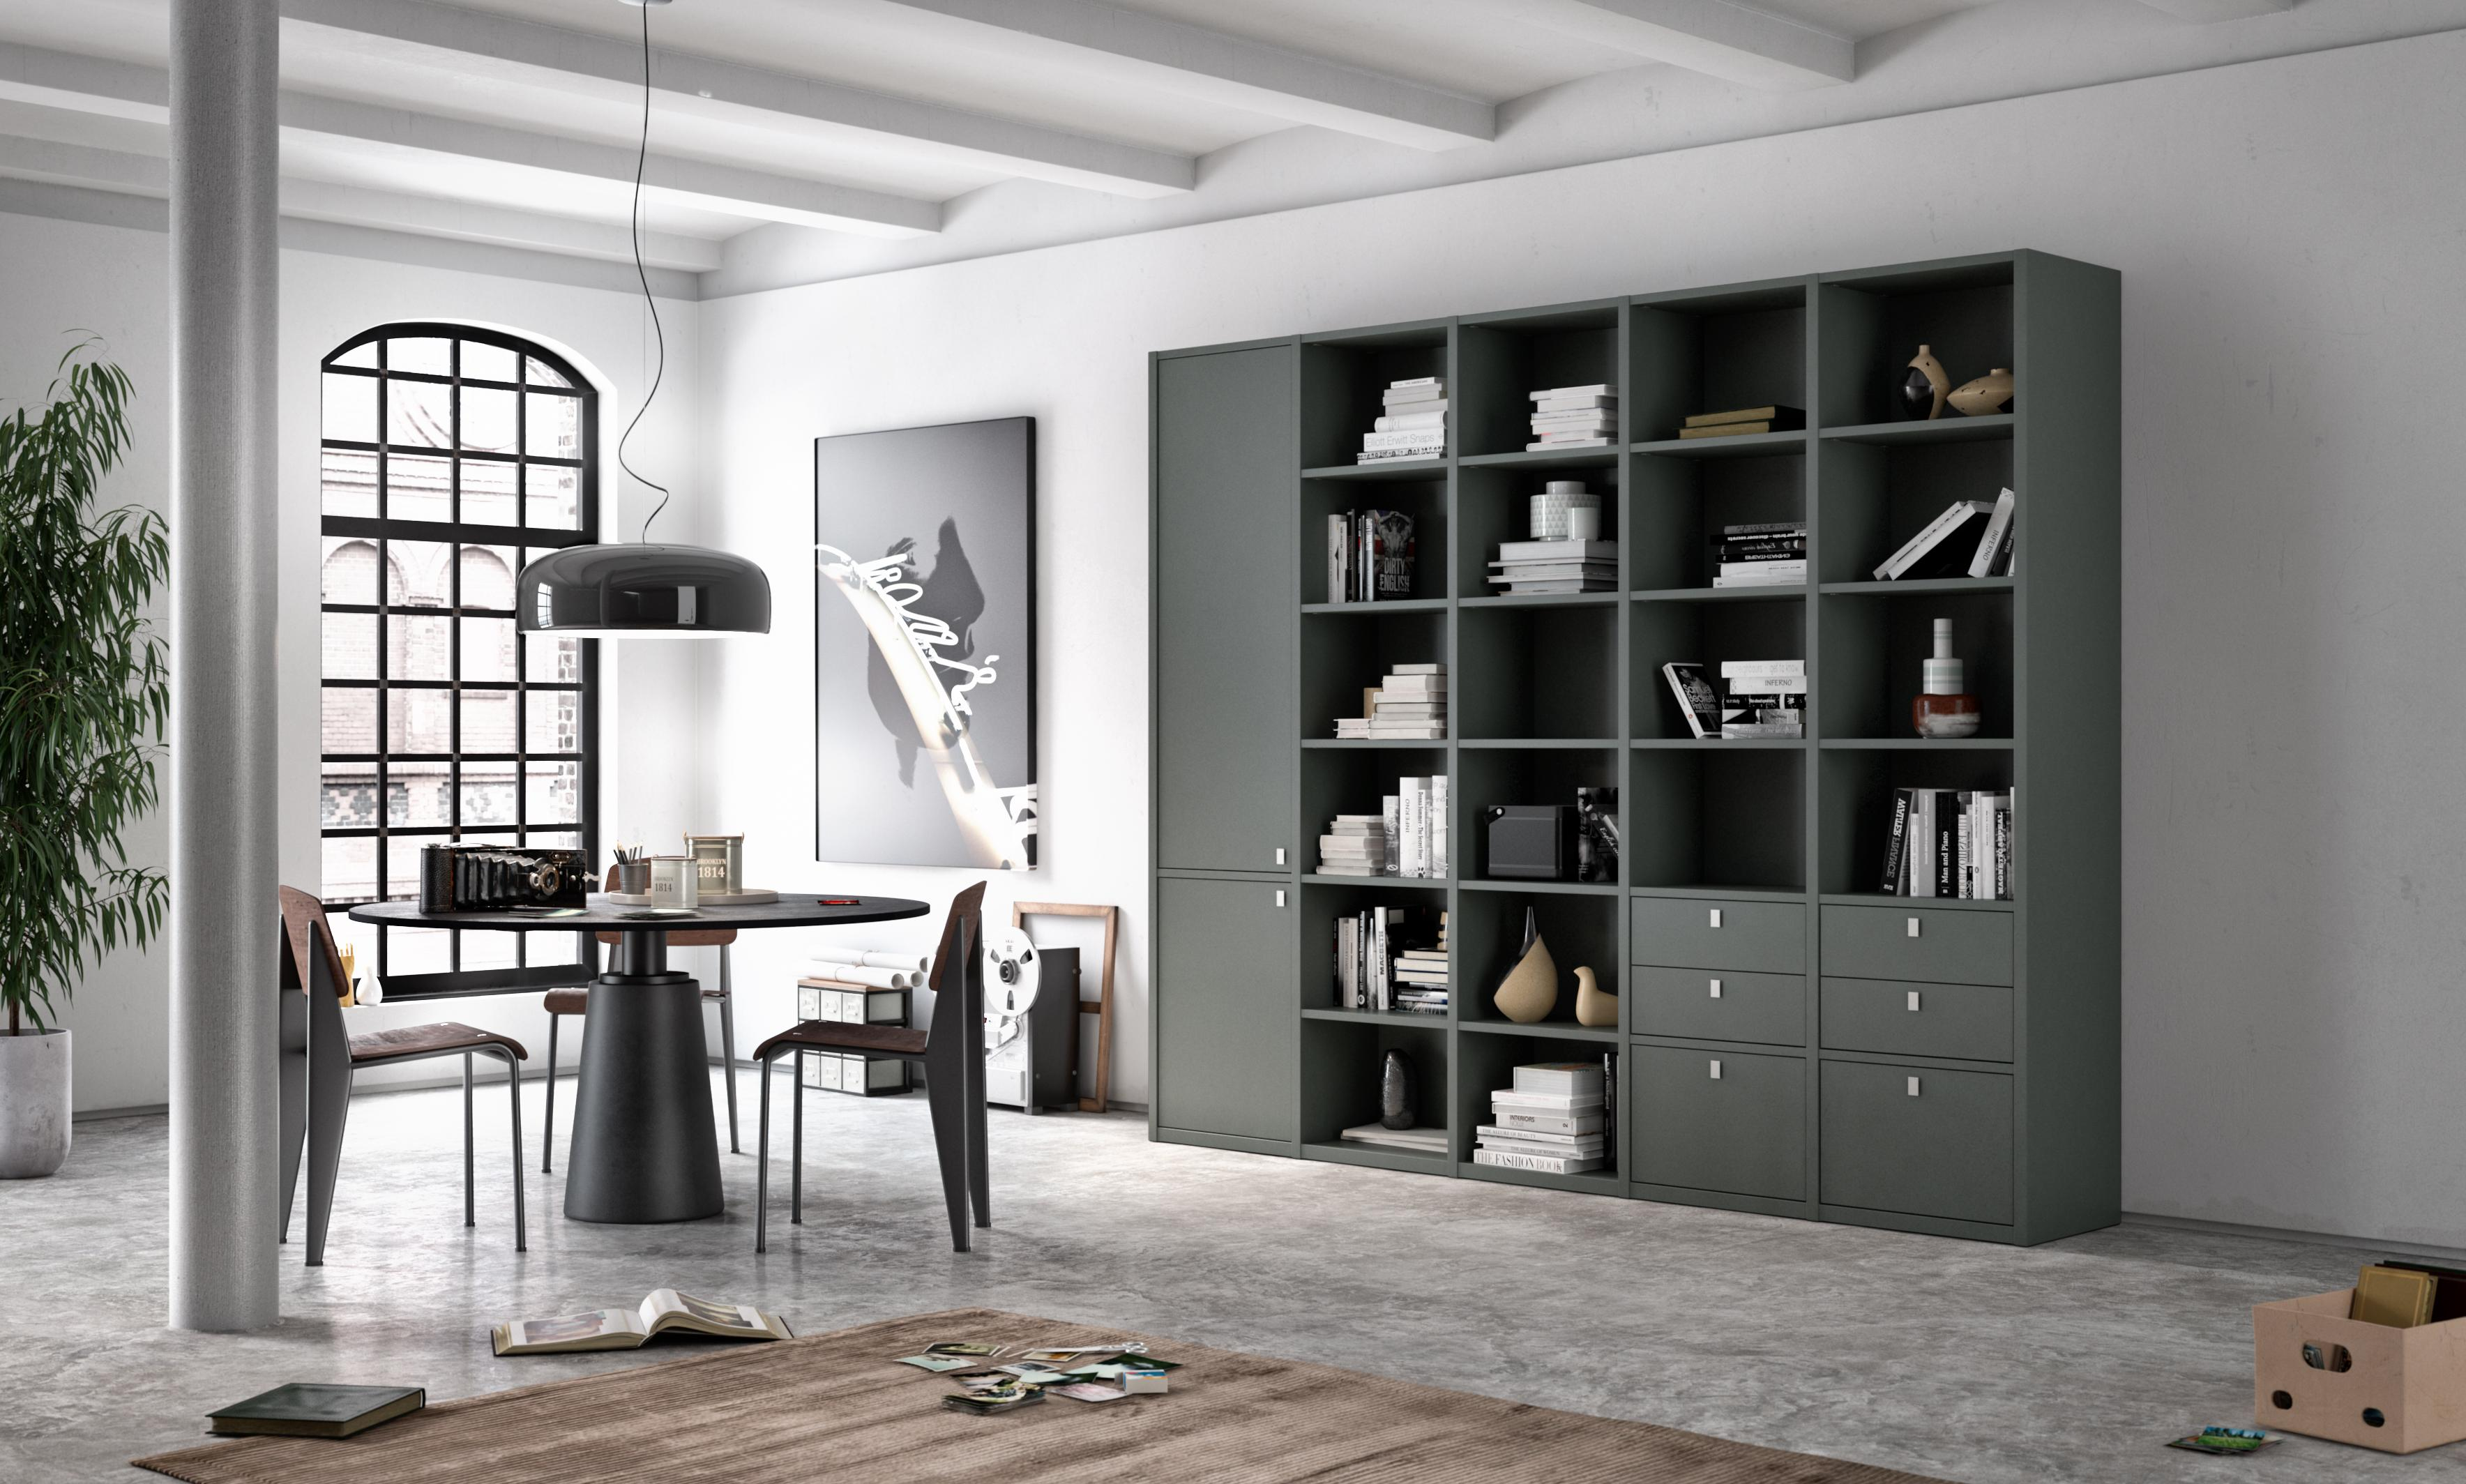 interl bke m bel weber neustadt landau karlsruhe. Black Bedroom Furniture Sets. Home Design Ideas